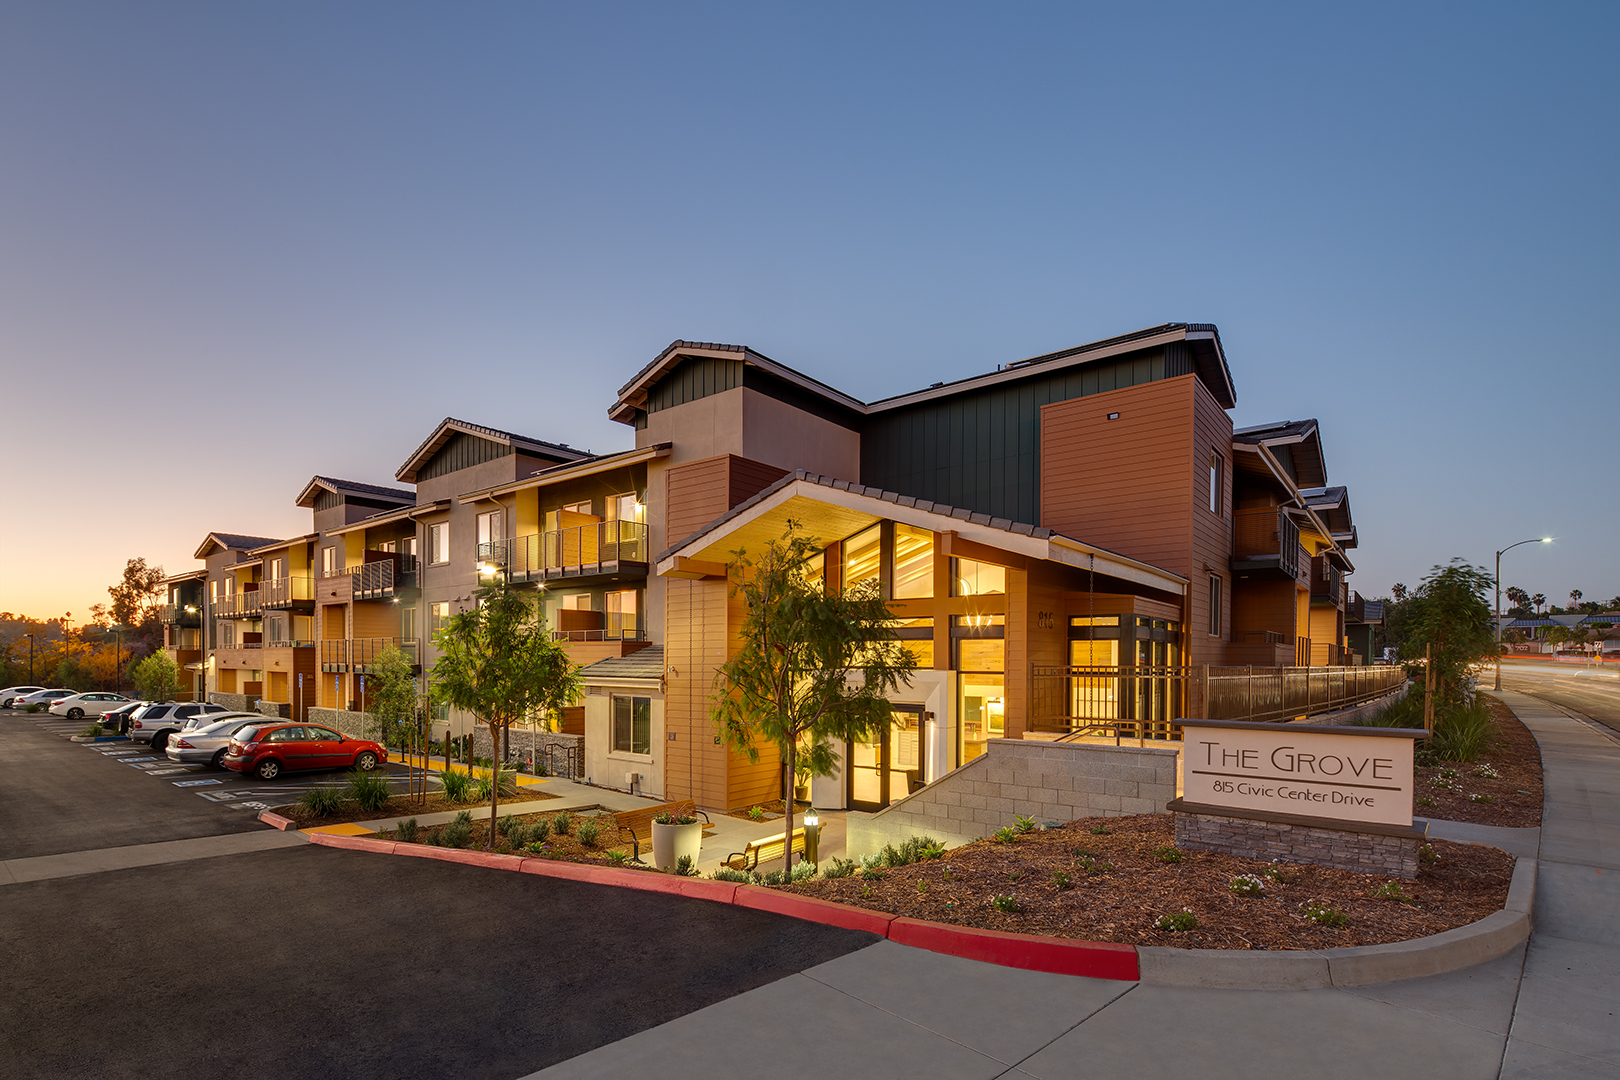 Photo of an apartment complex in Vista.